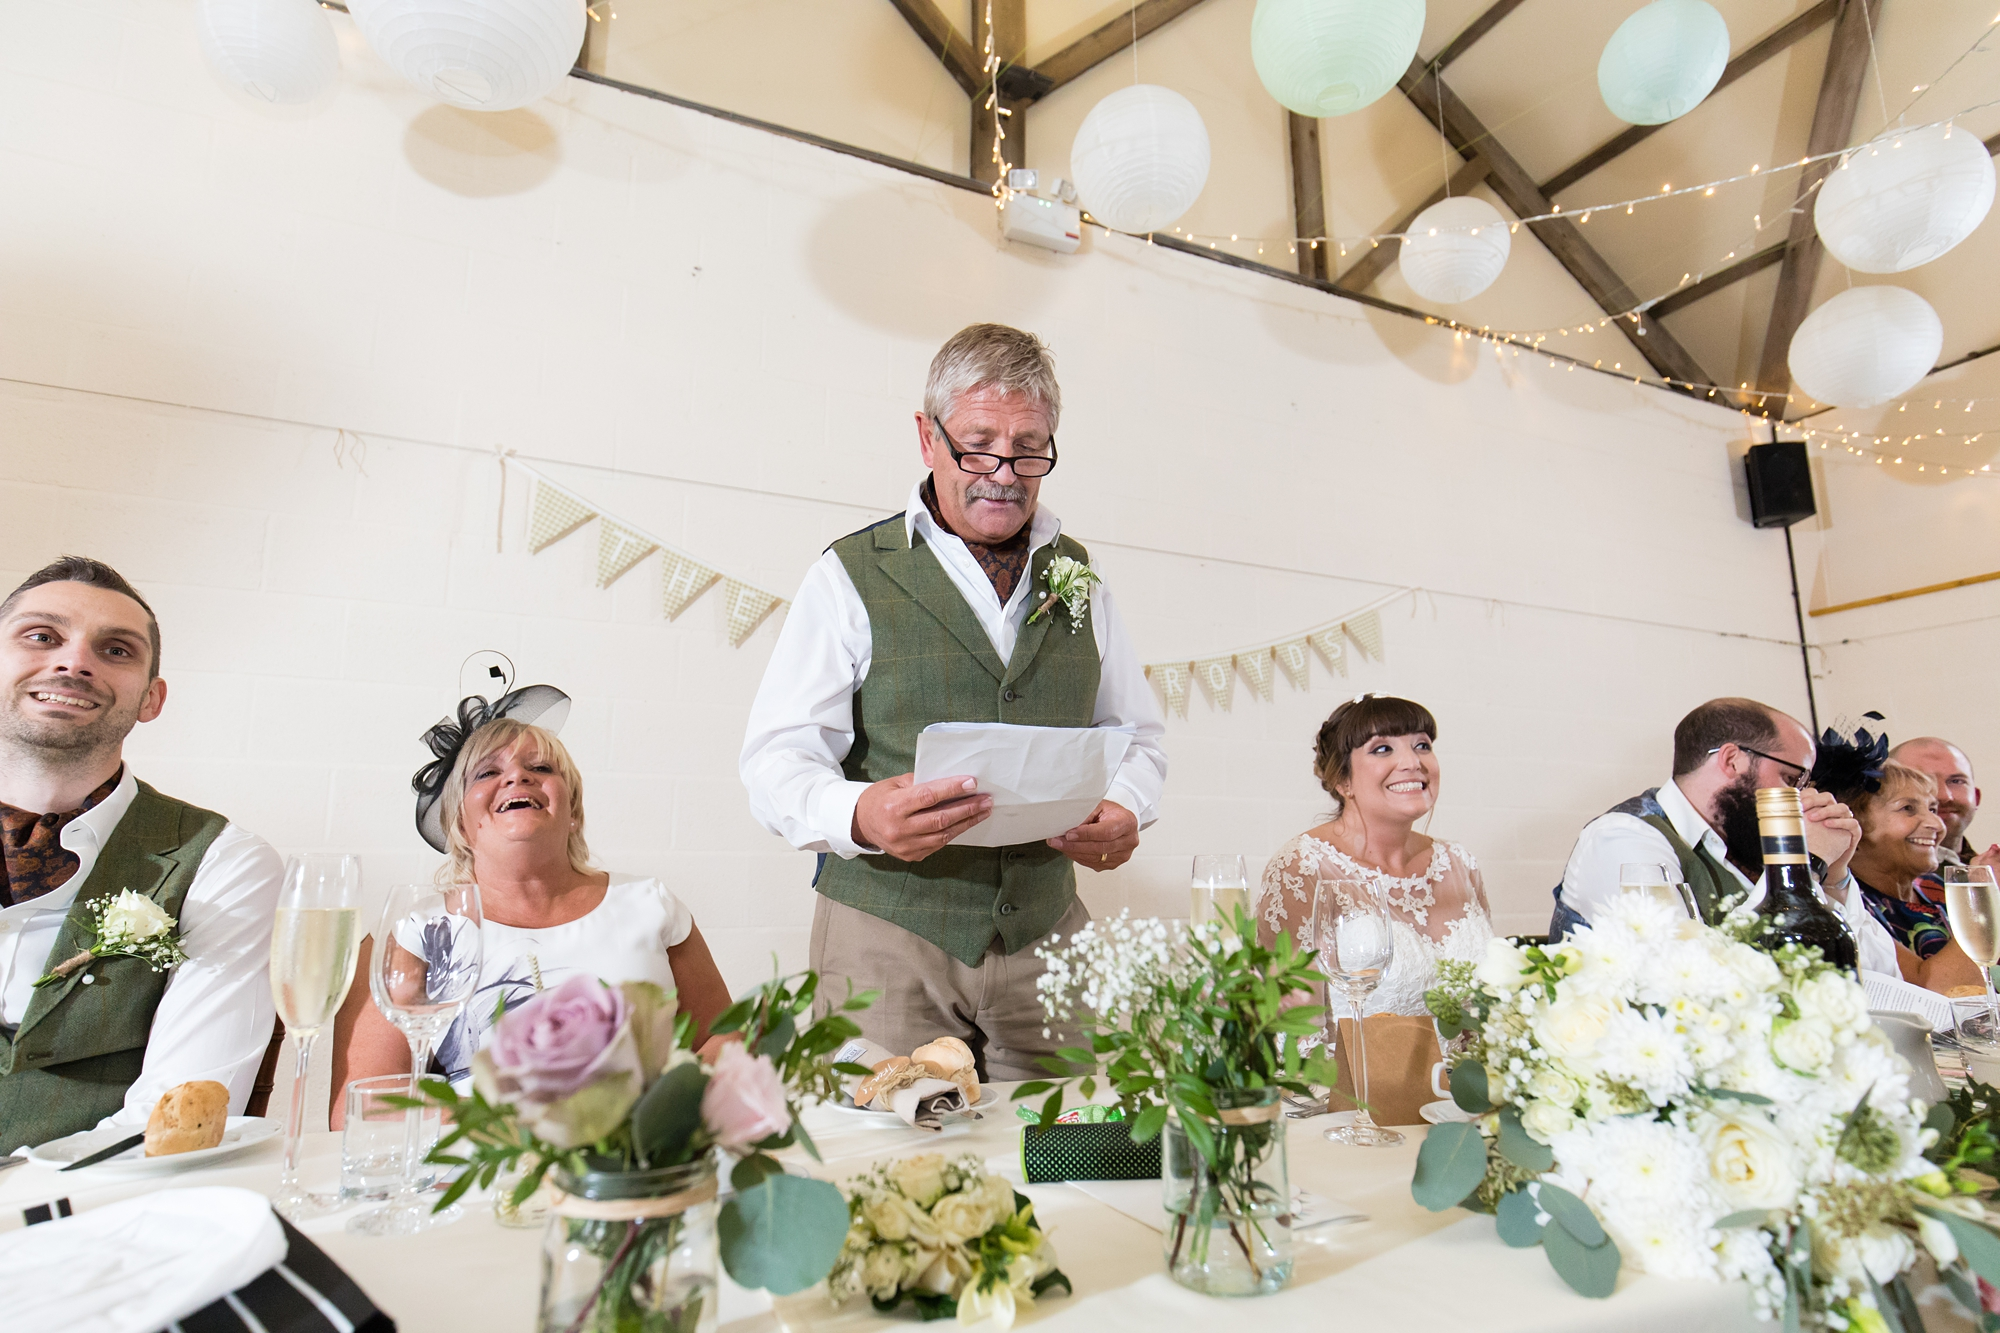 York Wedding Photography at Barmbyfield Barns dad giving speech